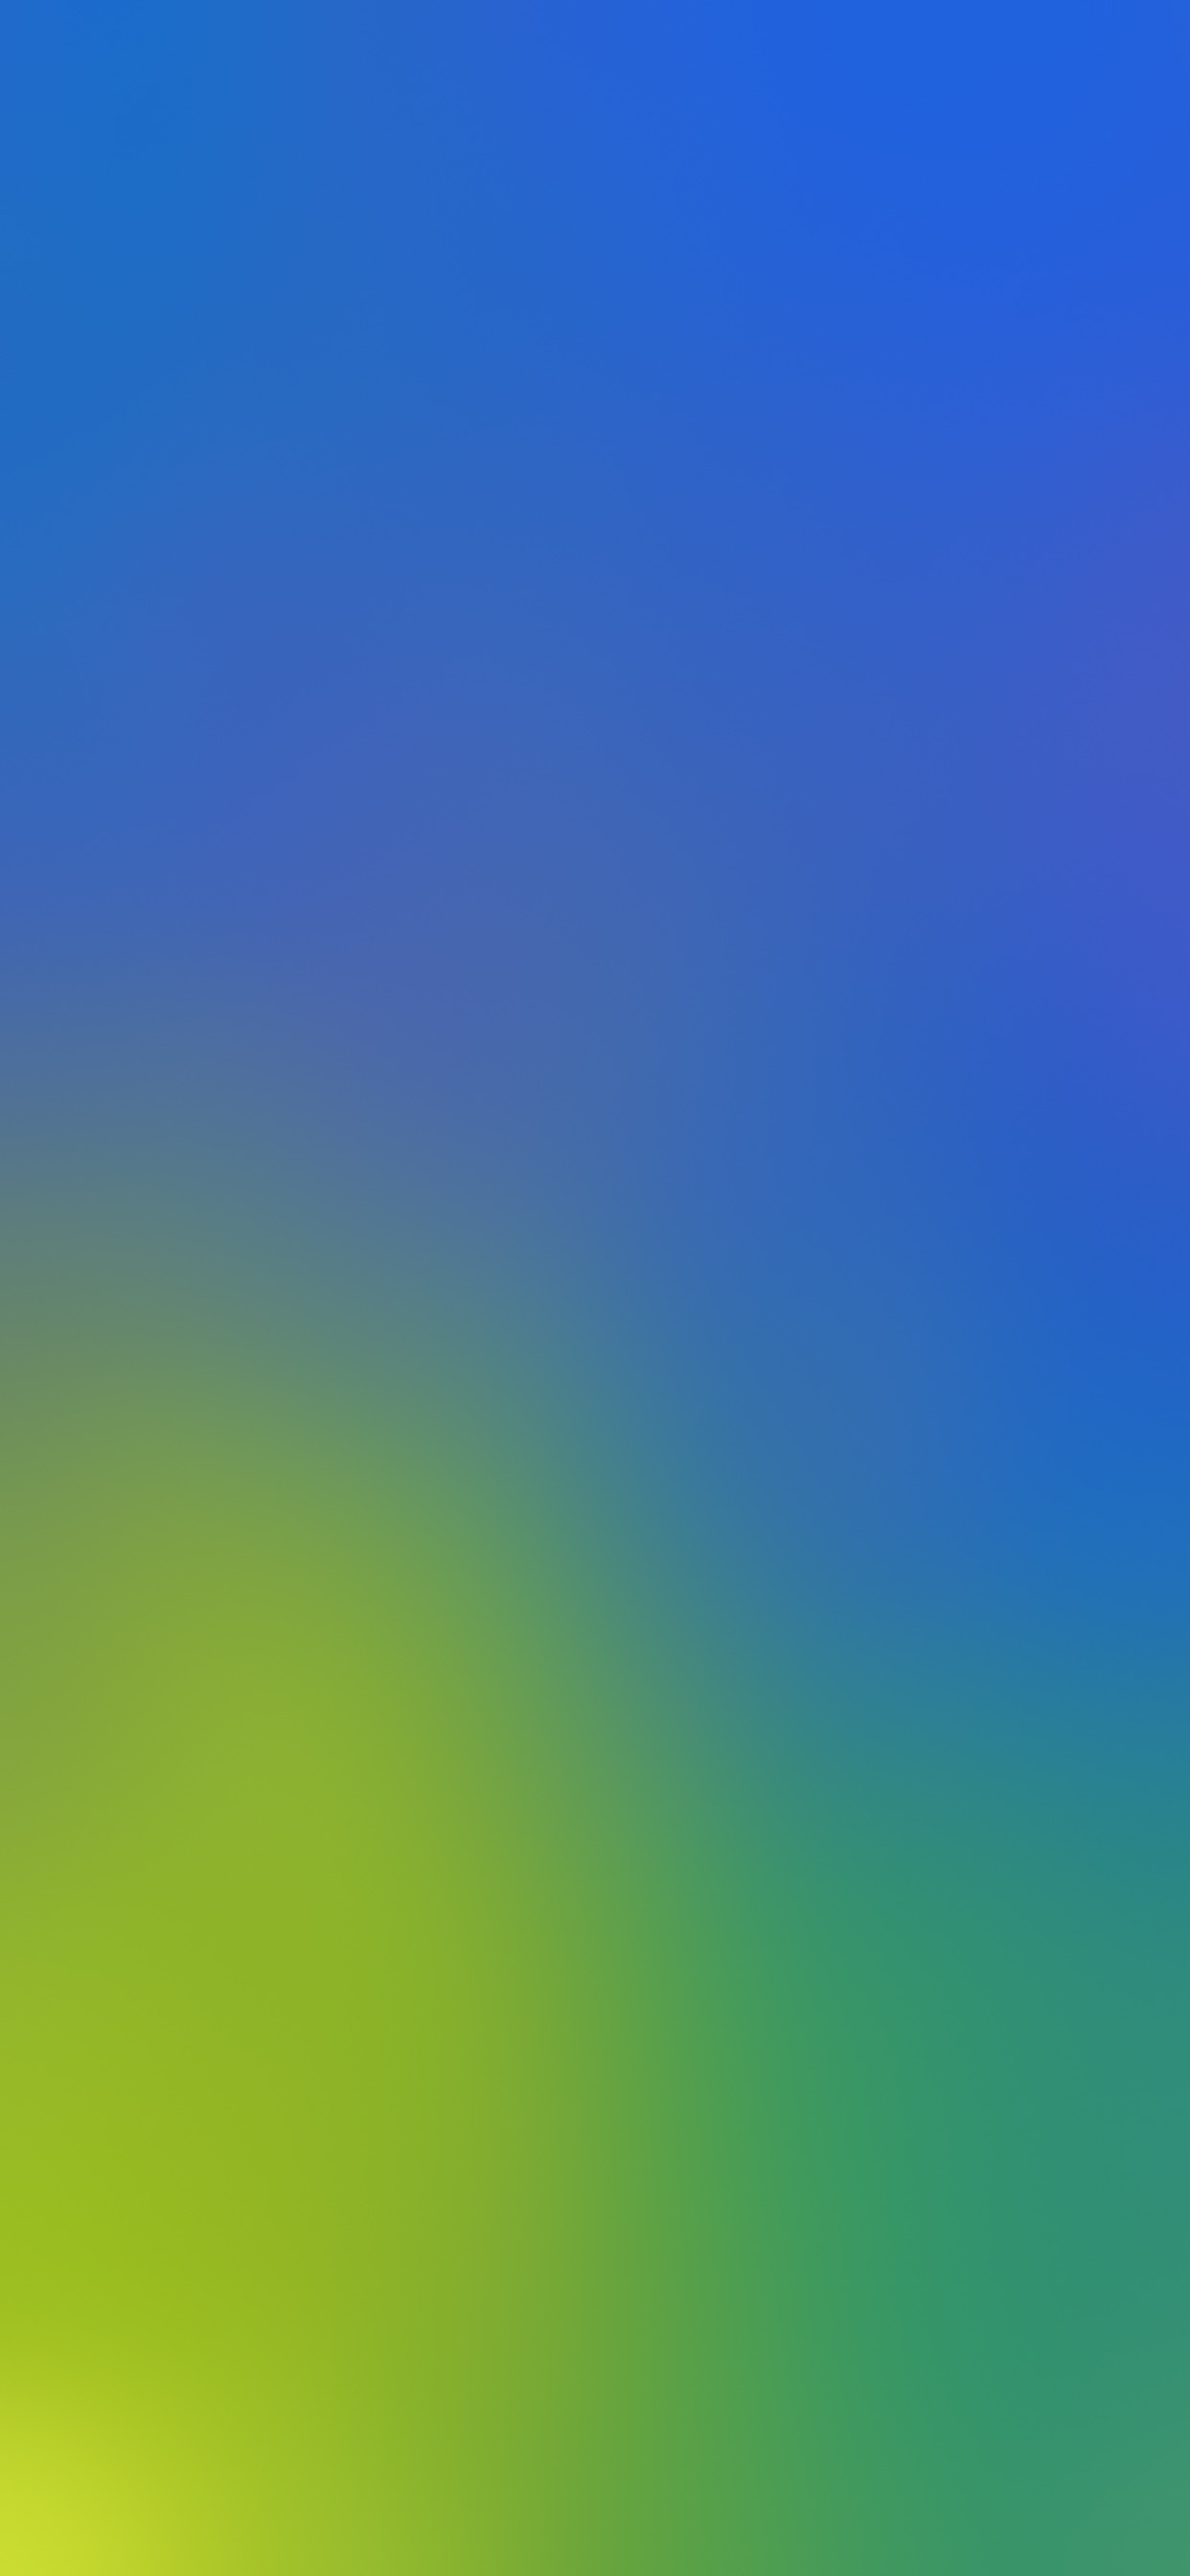 iOS 14 promotional gradients iphone wallpaper ar72014 idownloadblog 2